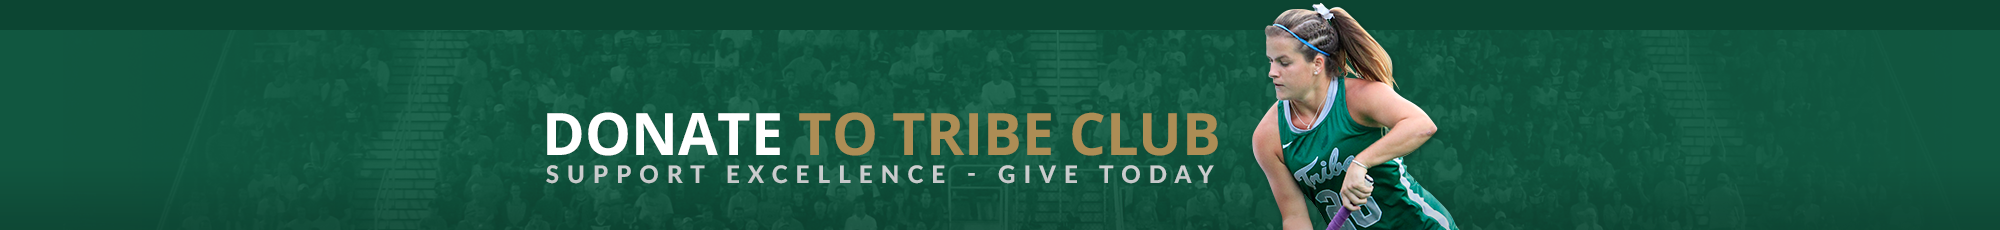 Donate to the Tribe Club Promo